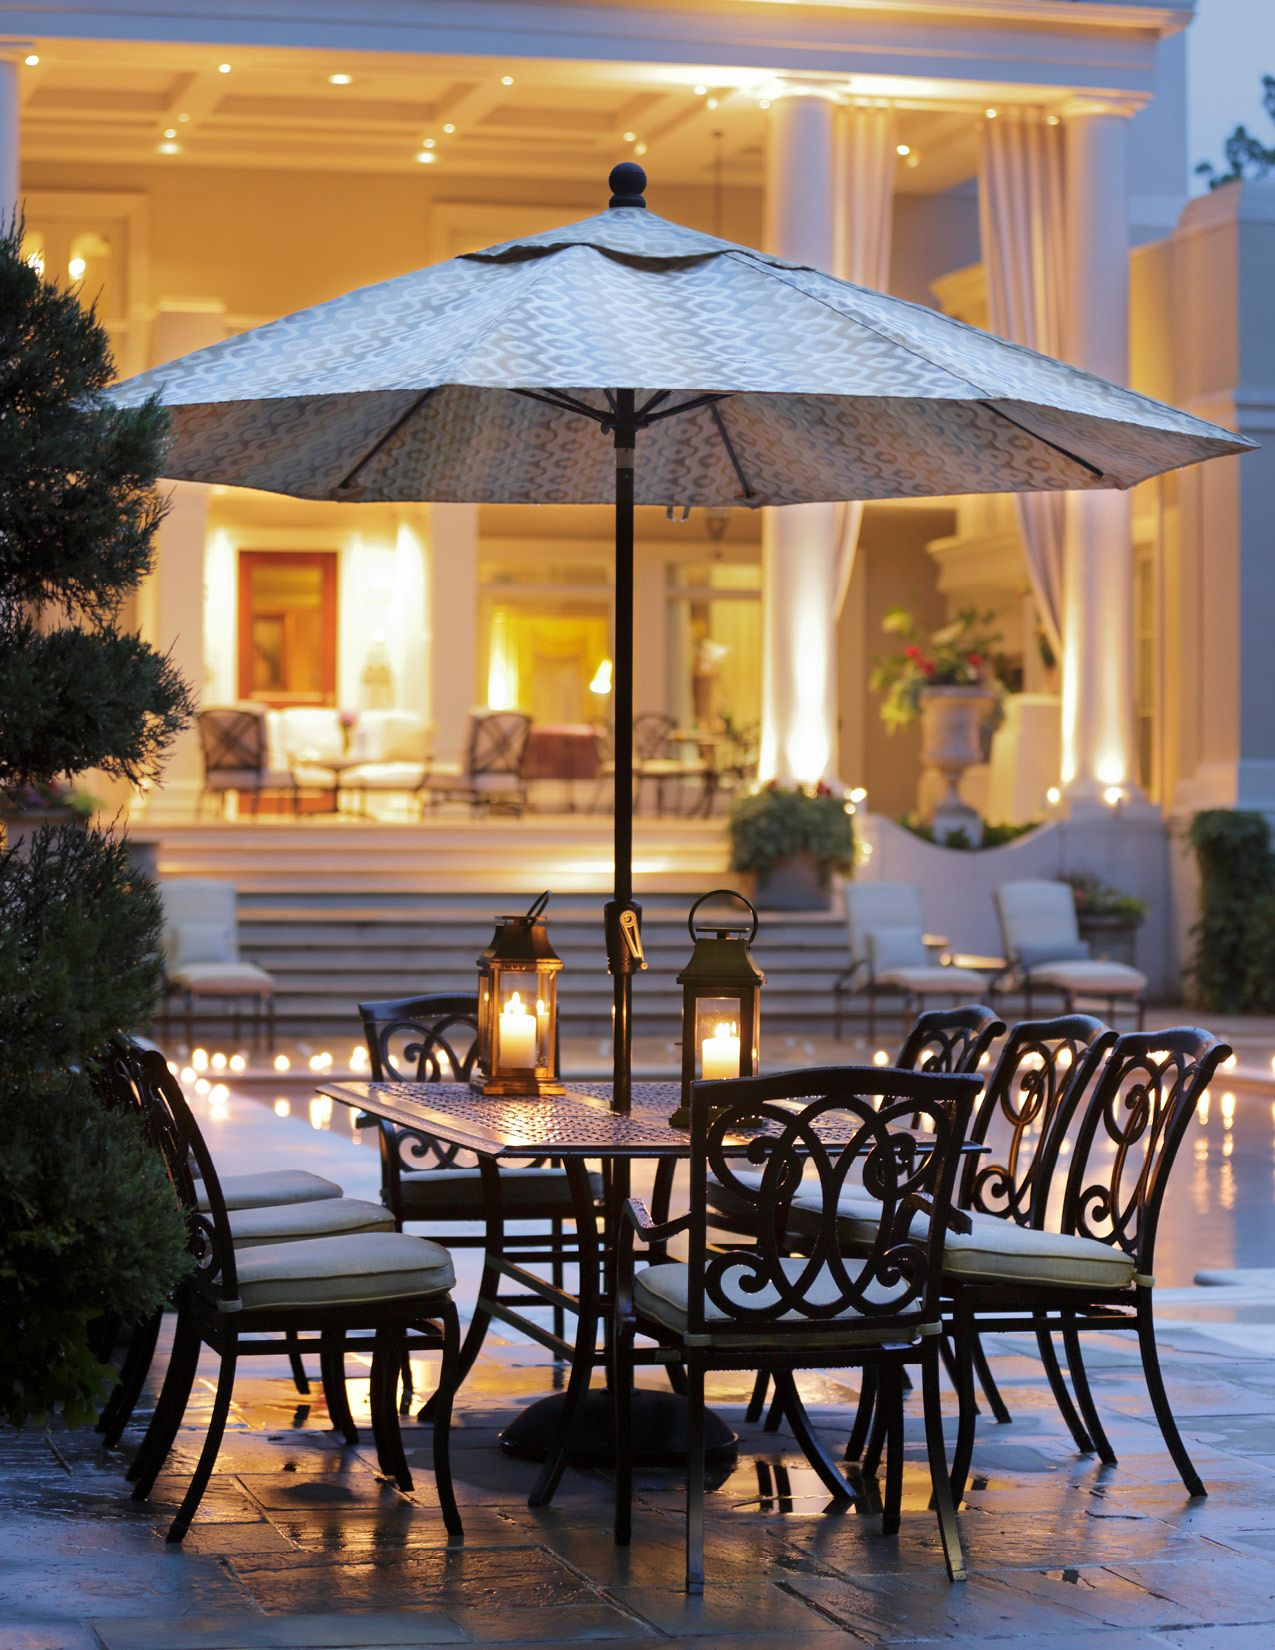 Frontgate Summer Classics Westport   Outdoor Furniture Collection   Patio  Furniture Sets | Deck/Porch Ideas | Pinterest | Patio Furniture Sets,  Outdoor ...